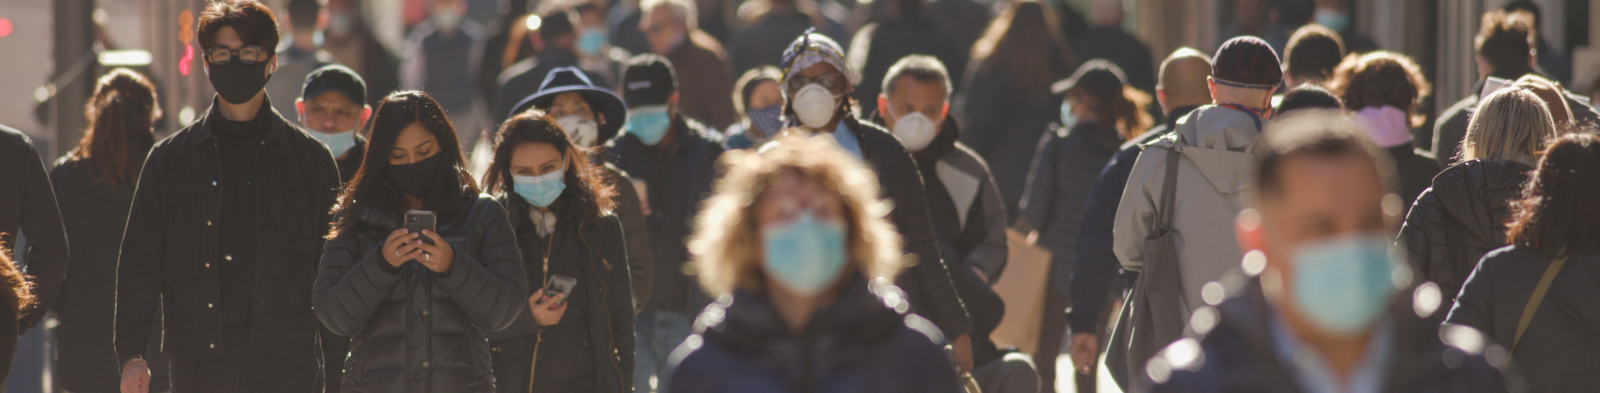 A group of people wearing masks